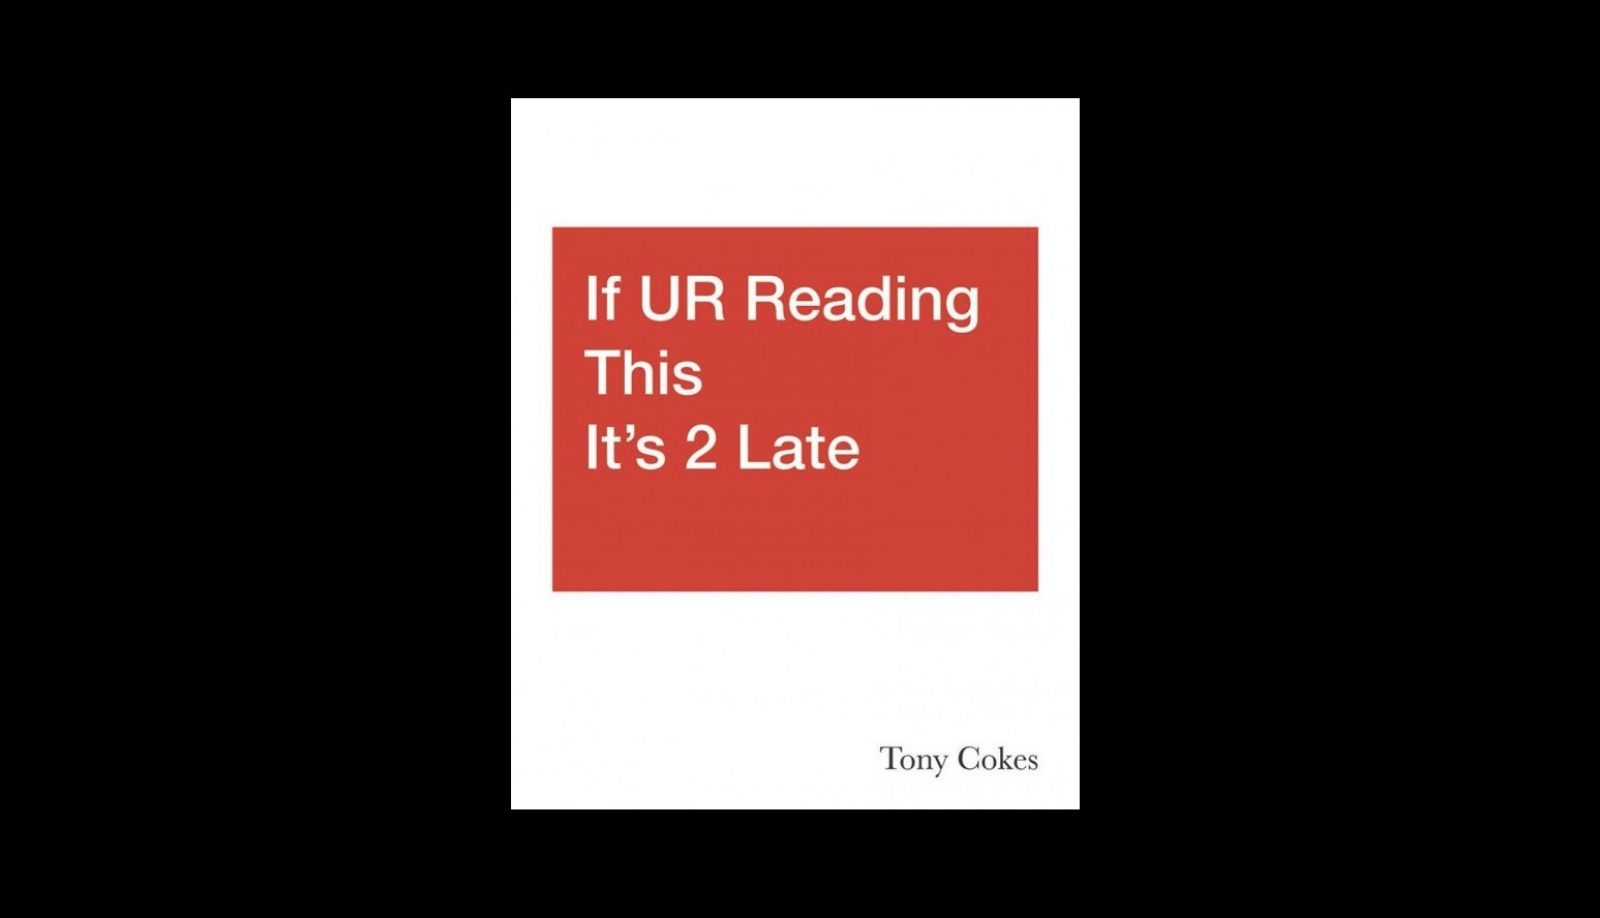 Tony Cokes: If UR Reading This It's 2 Late, Vol. 1–3 (2020)